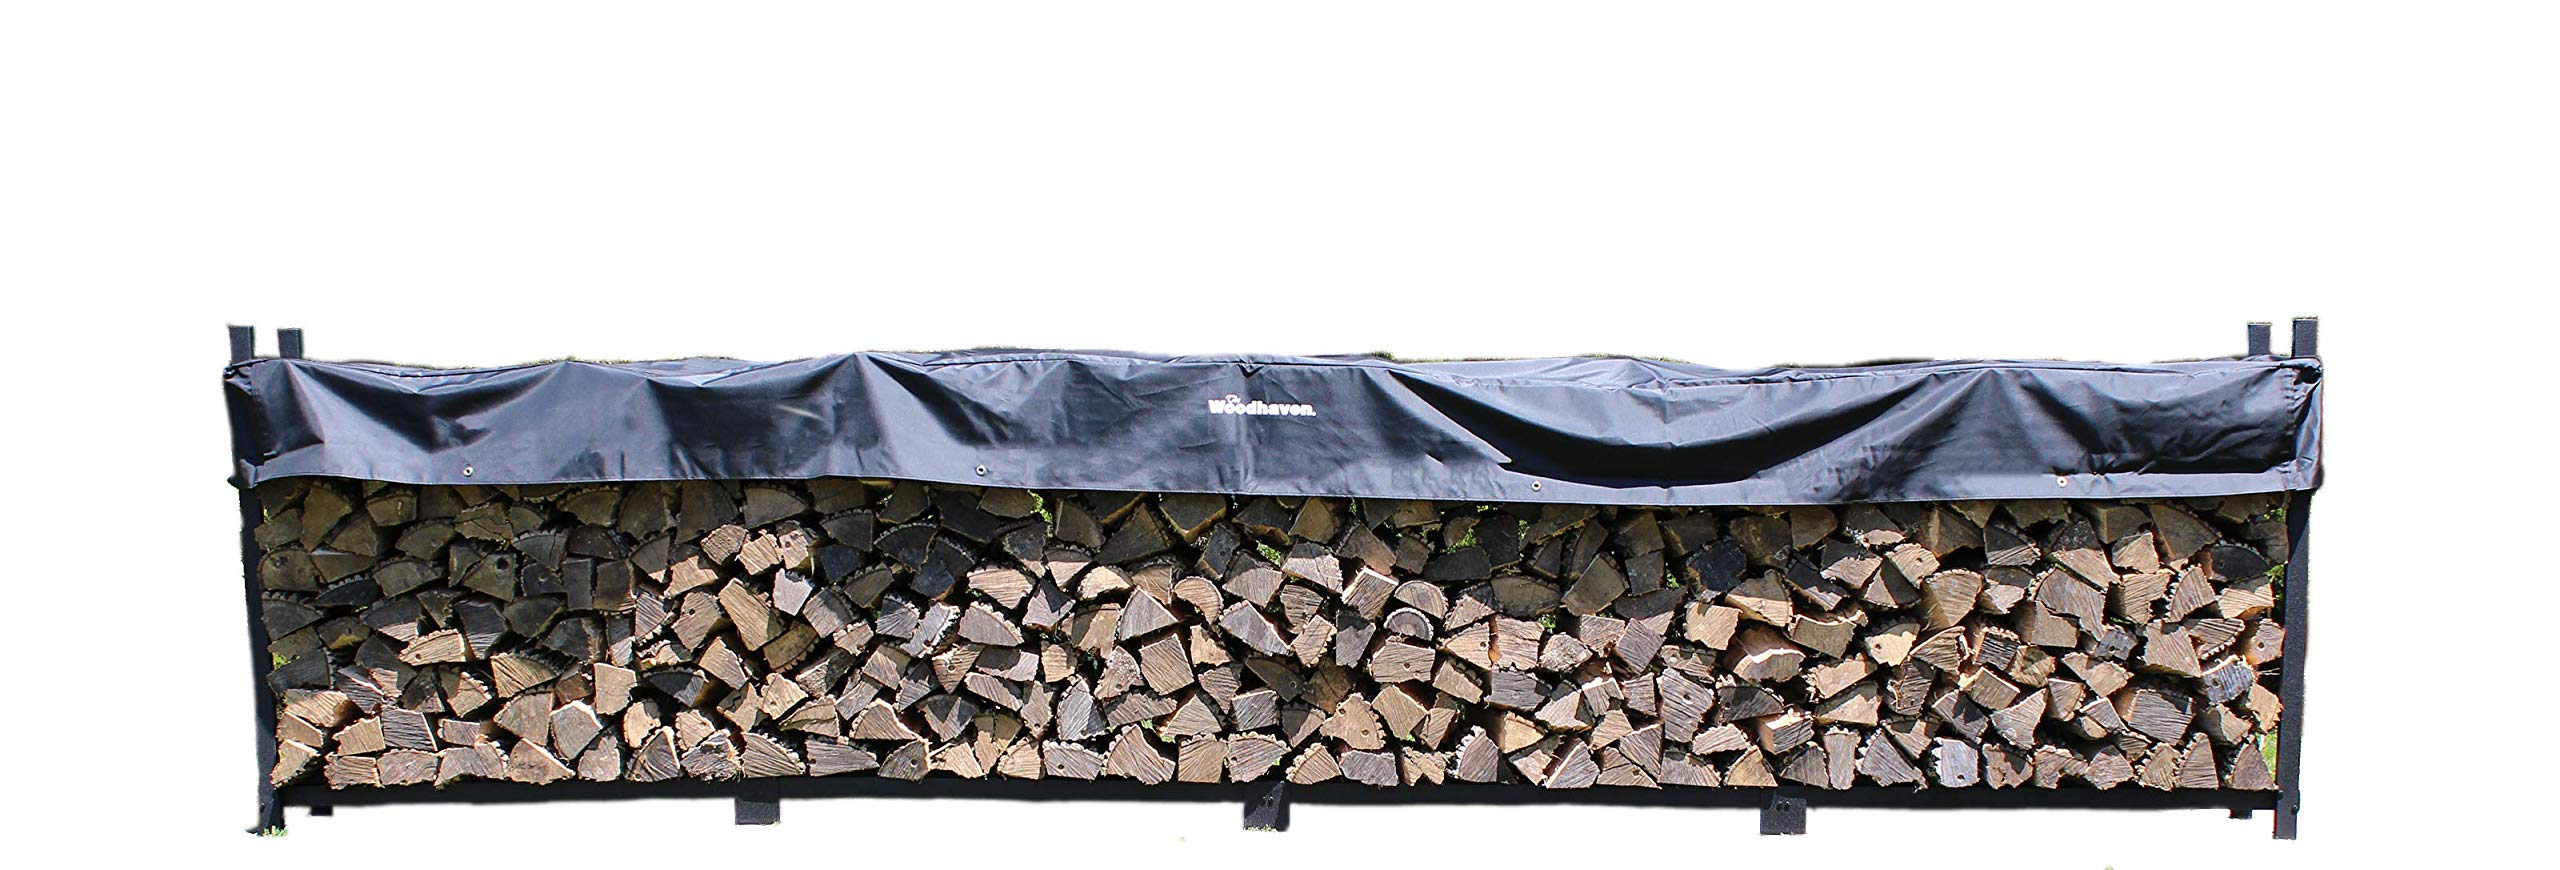 Woodhaven The 16 Foot Firewood Log Rack with Cover by Woodhaven